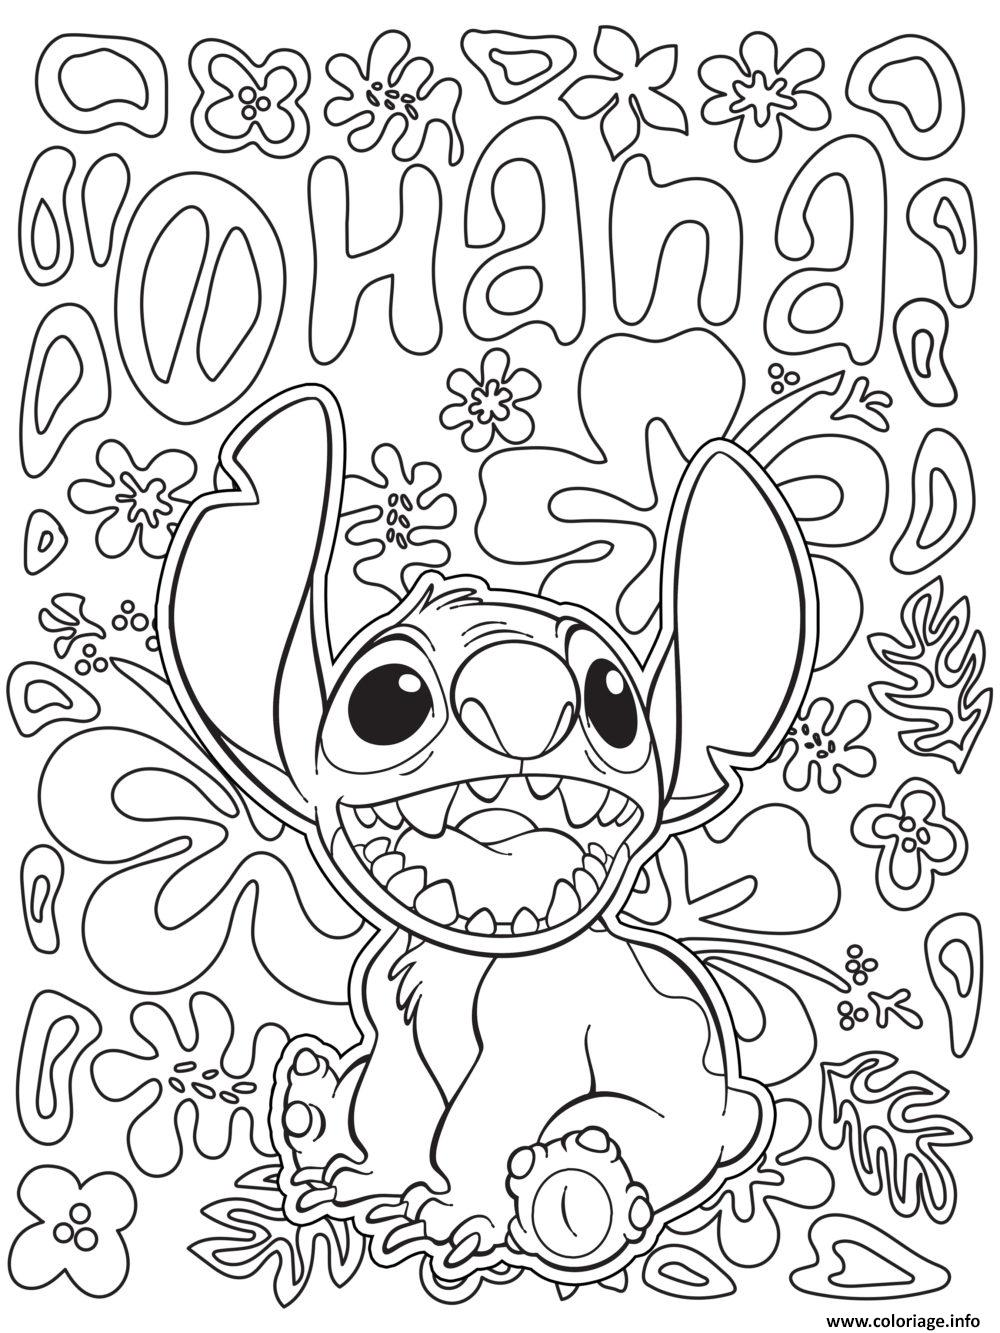 coloriage mandala disney facile stitch from lilo and stitch dessin imprimer - Dessin A Colorier Disney